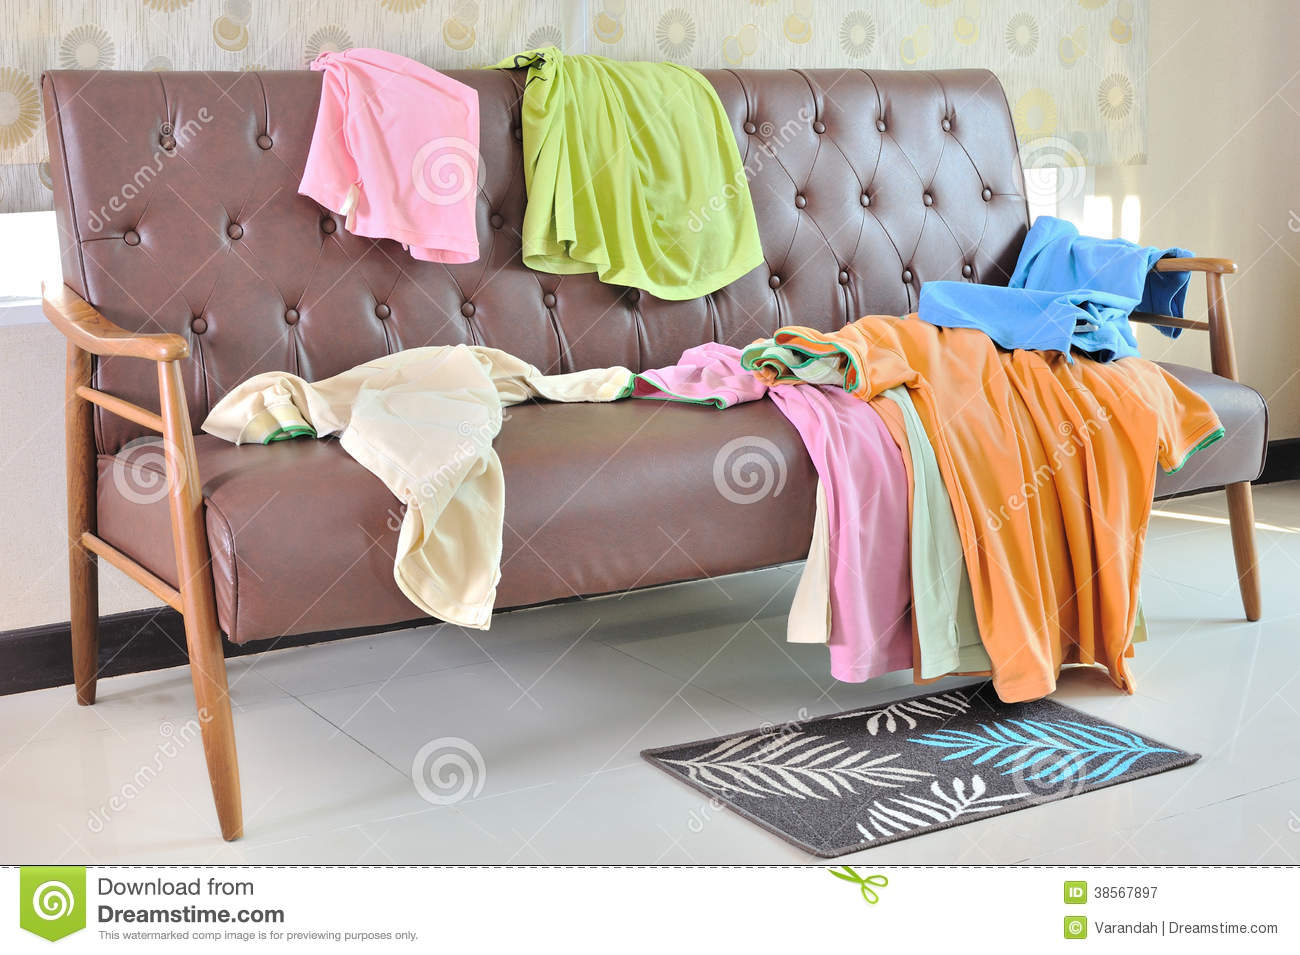 Messy Clothes Scattered On A Sofa In Room Stock Image Image Of